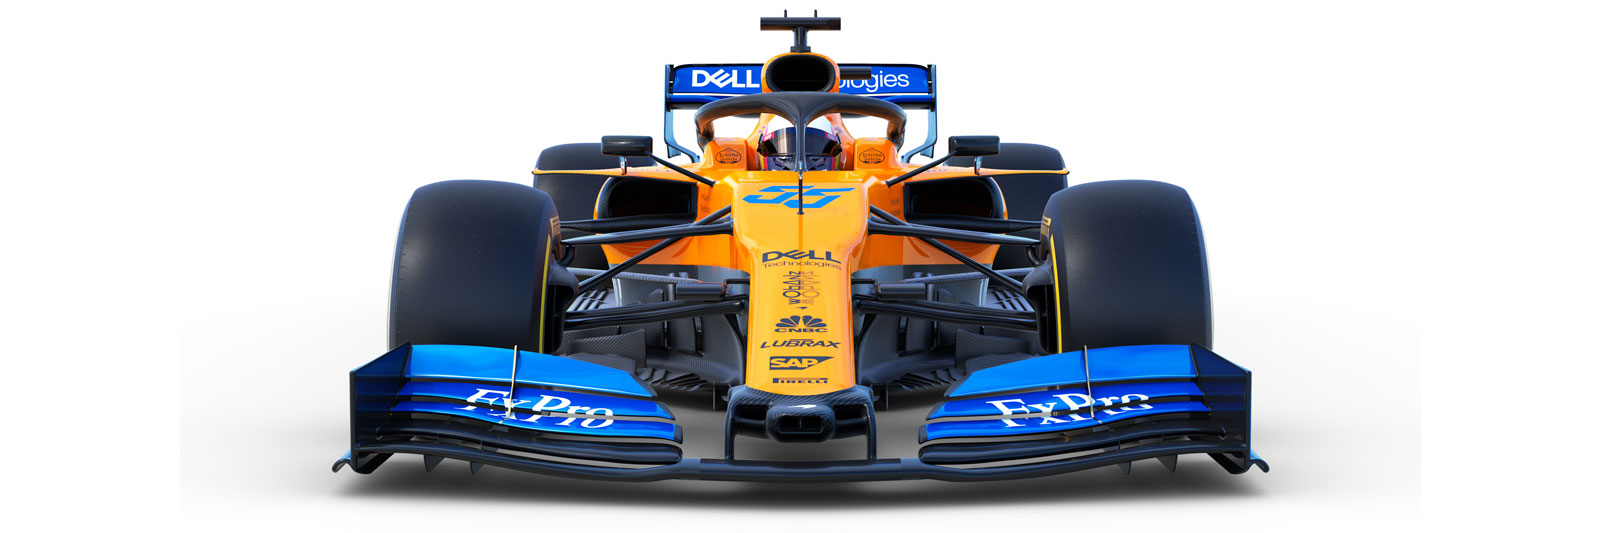 McLaren Grid Club Tickets from Grand Prix Tours